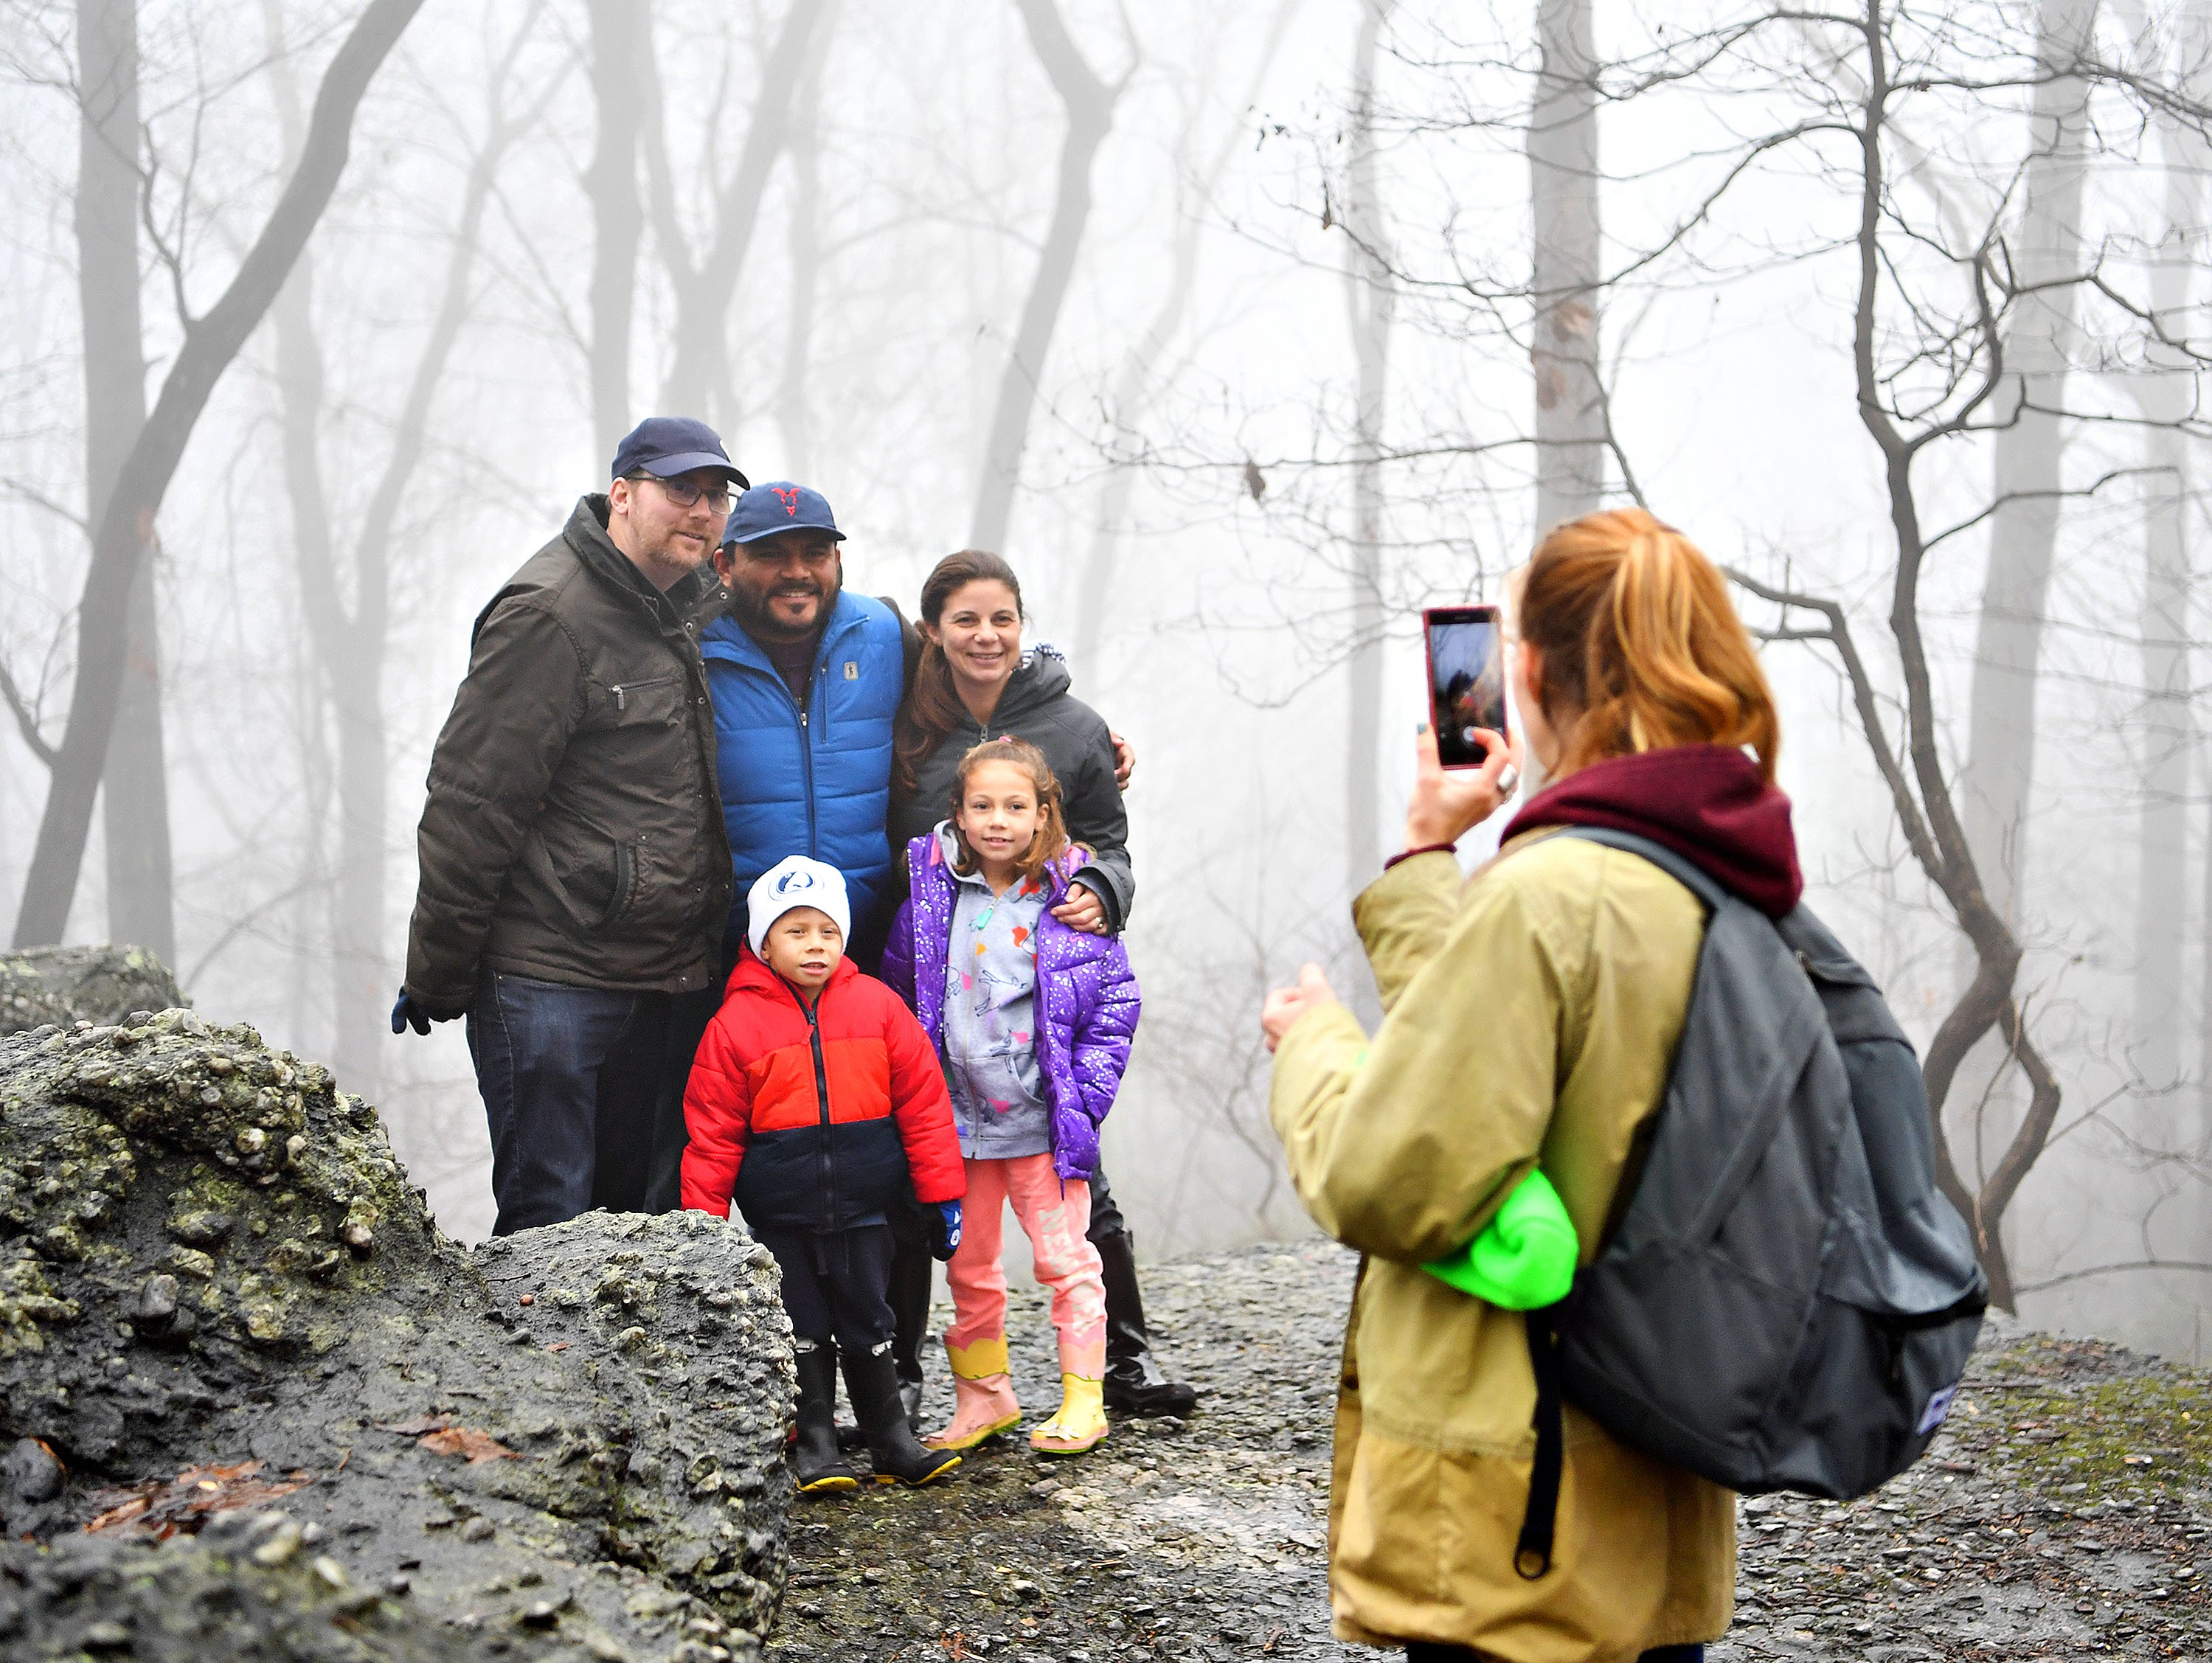 Melanie Butler, right, of Lancaster, photographs family members, clockwise from left, Joel Butler, of Victoria, Canada, Manny Hernandez, Tiffany Butler, Matilda Hernandez, 7, and Tiago Hernandez, 4, all of Yucatan, Mexico, against a backdrop of trees in the fog during a Marshmallow Hike led by York County Parks Naturalist Kelsey Frey at Rocky Ridge Park in Springettsbury Township, Friday, Dec. 28, 2018. Dawn J. Sagert photo